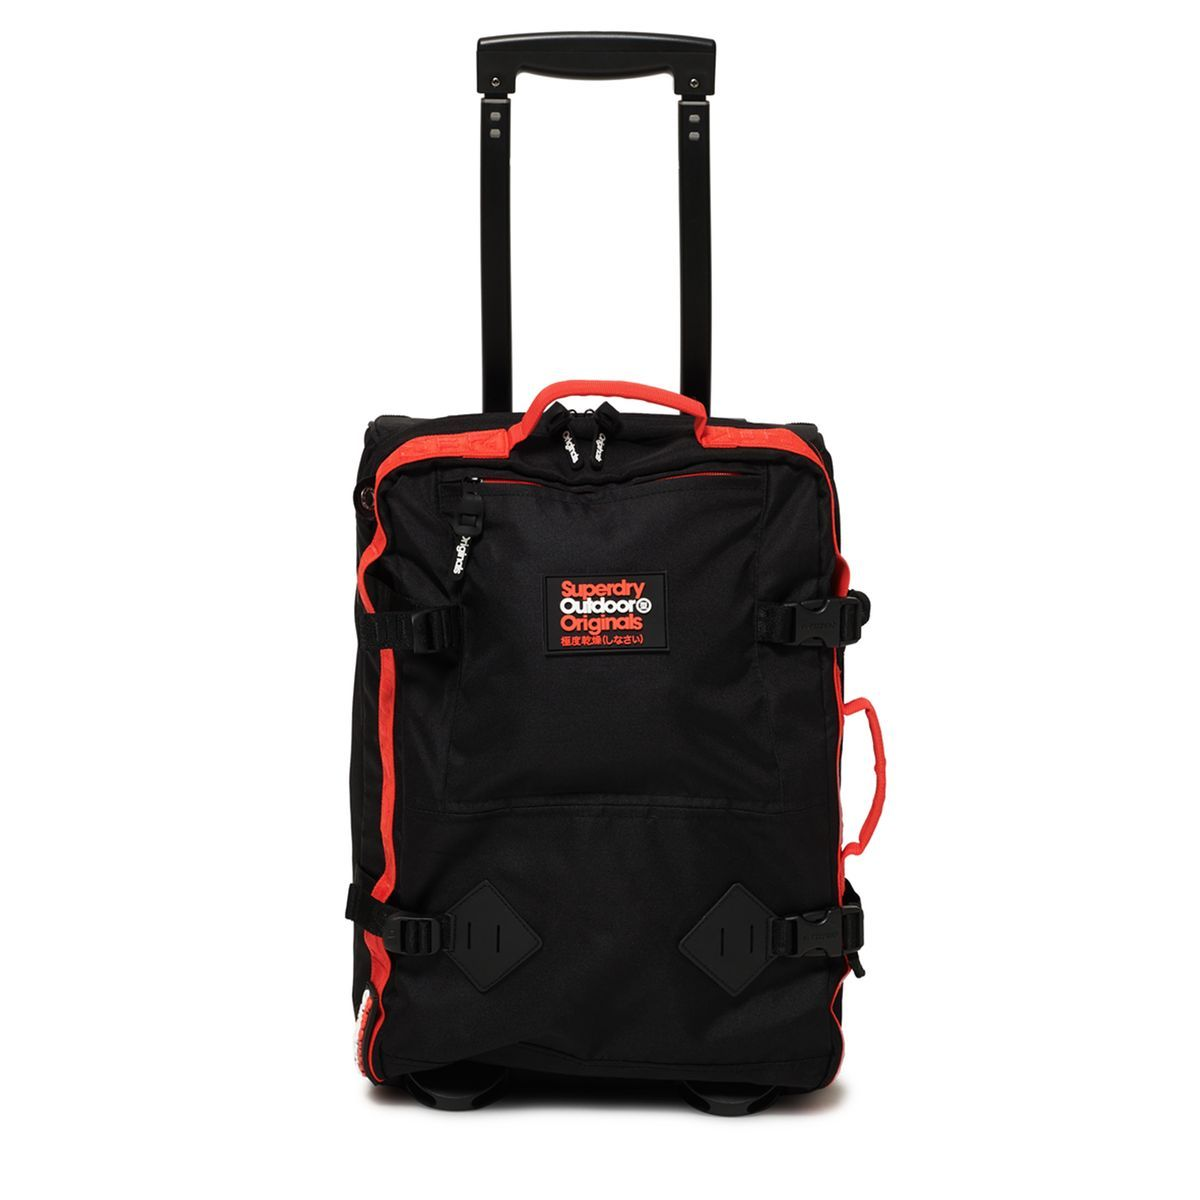 taille 40 19a6e b273e Petite valise cabine Montana in 2019 | Products | Valise ...